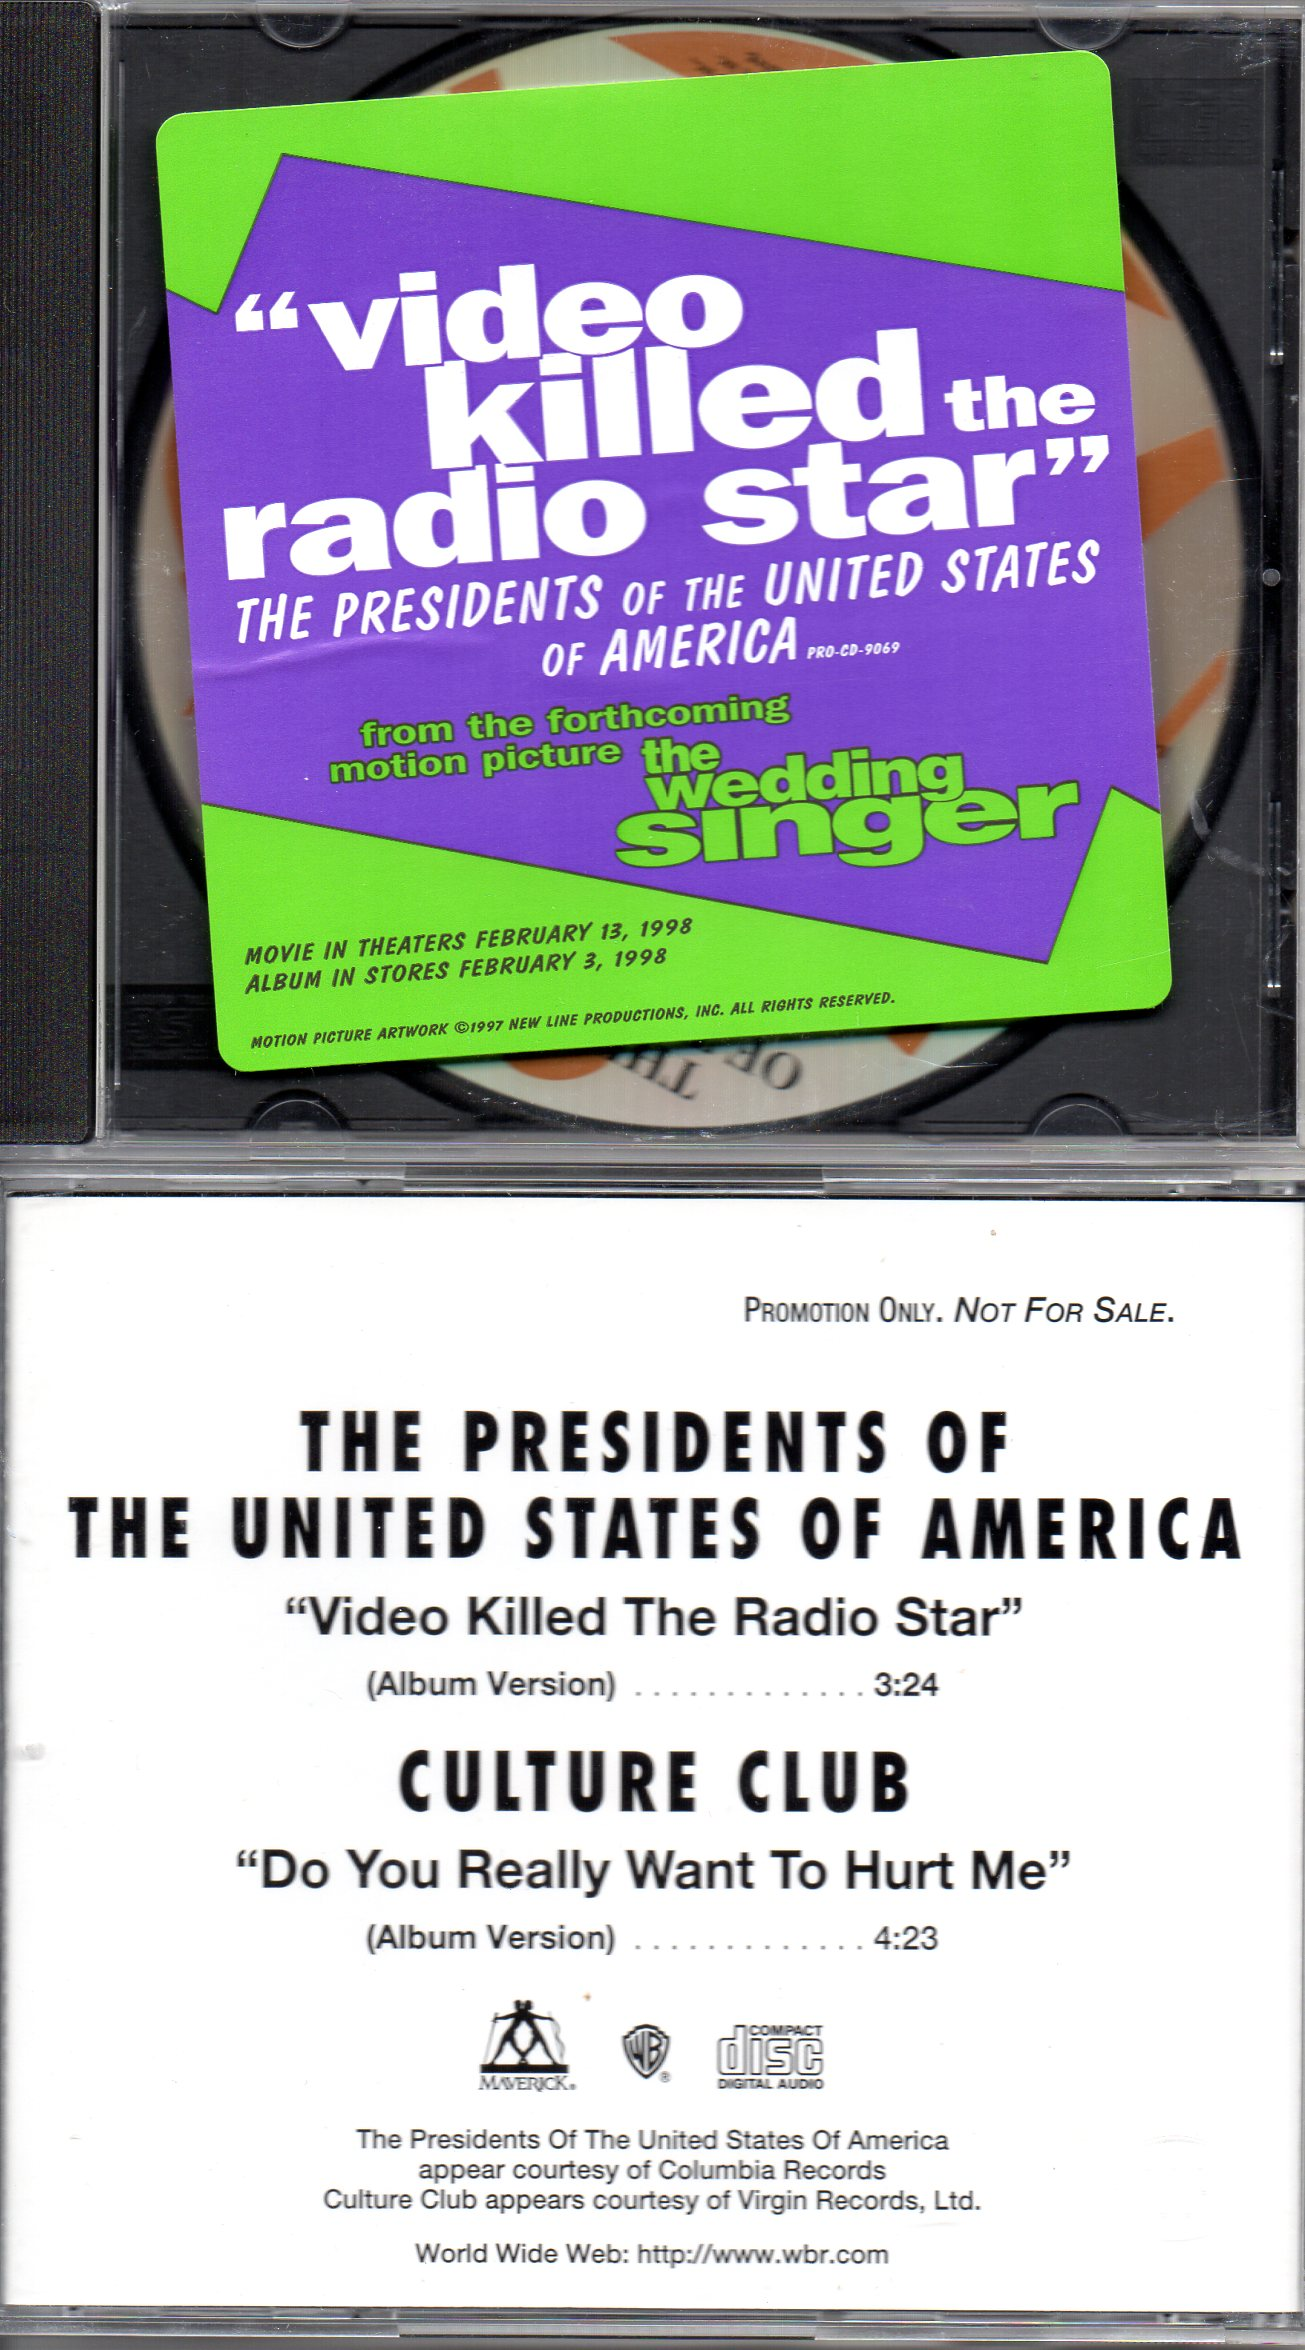 CULTURE CLUB - THE PRESIDENTS OF THE UNITED STATES - Do You Really Want To Hurt Me - Video Killed The Radio Star